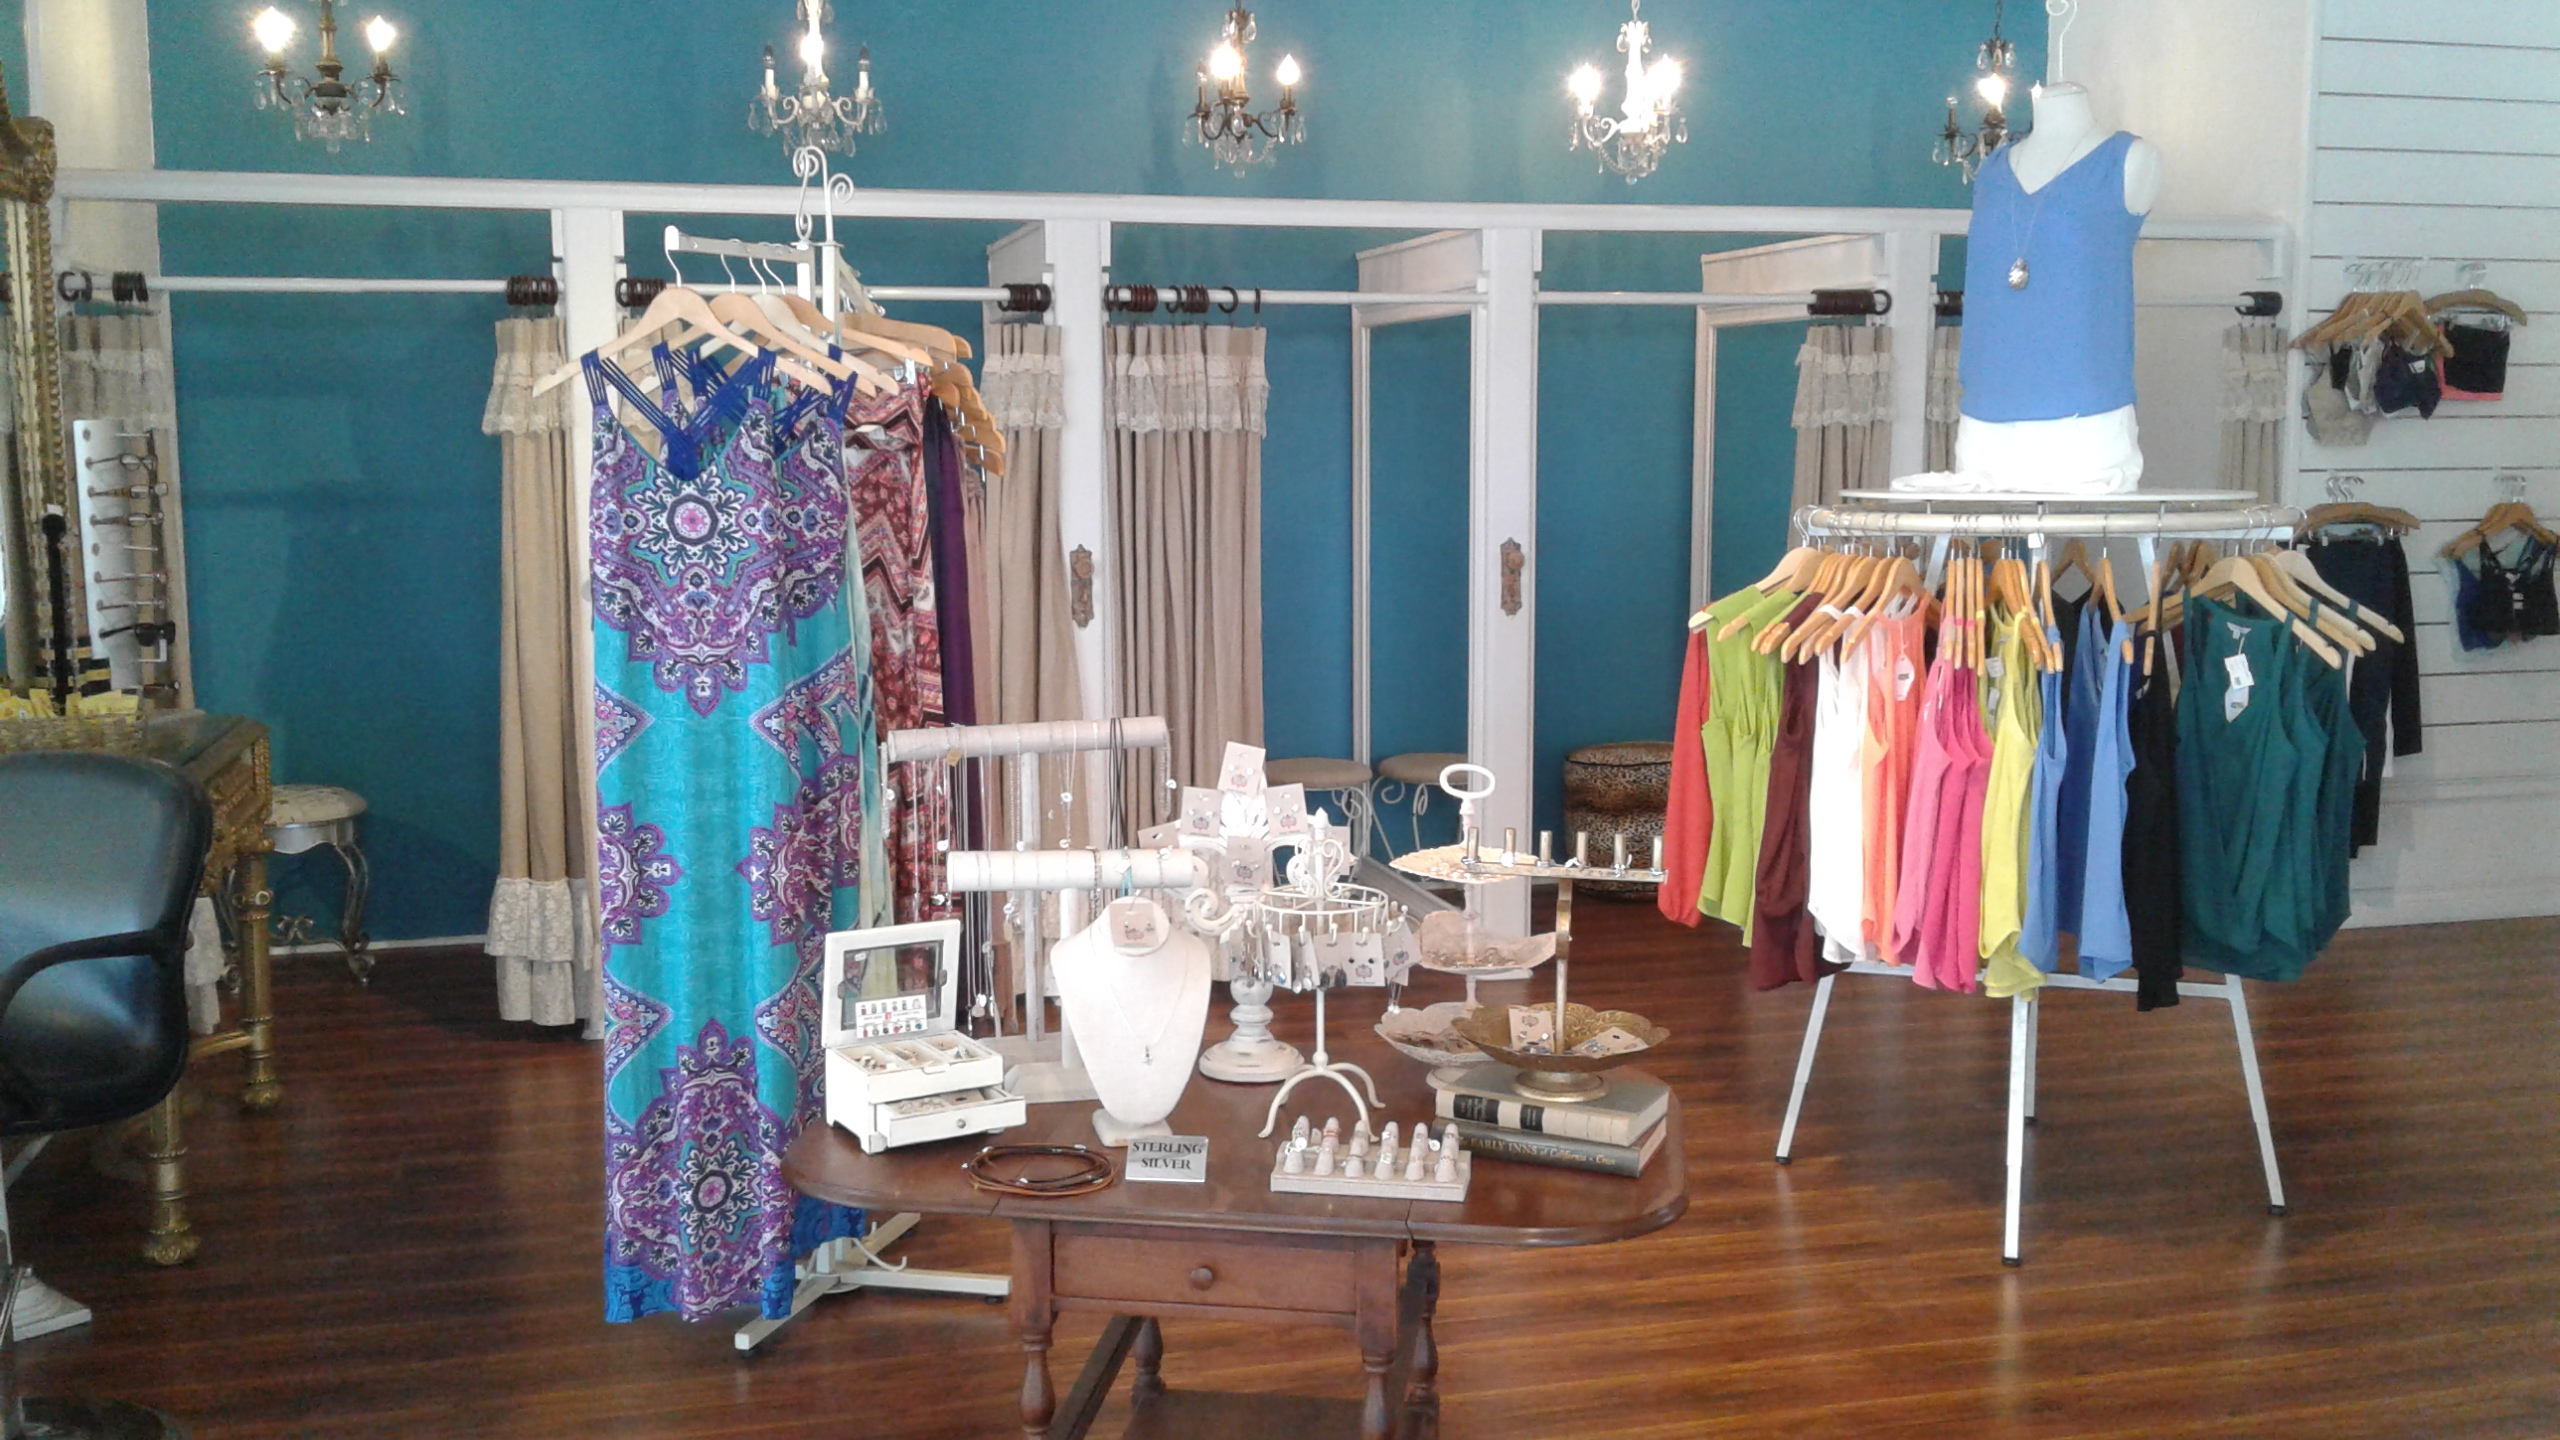 Gypsy couture in costa mesa ca 92627 for Chamber of couture